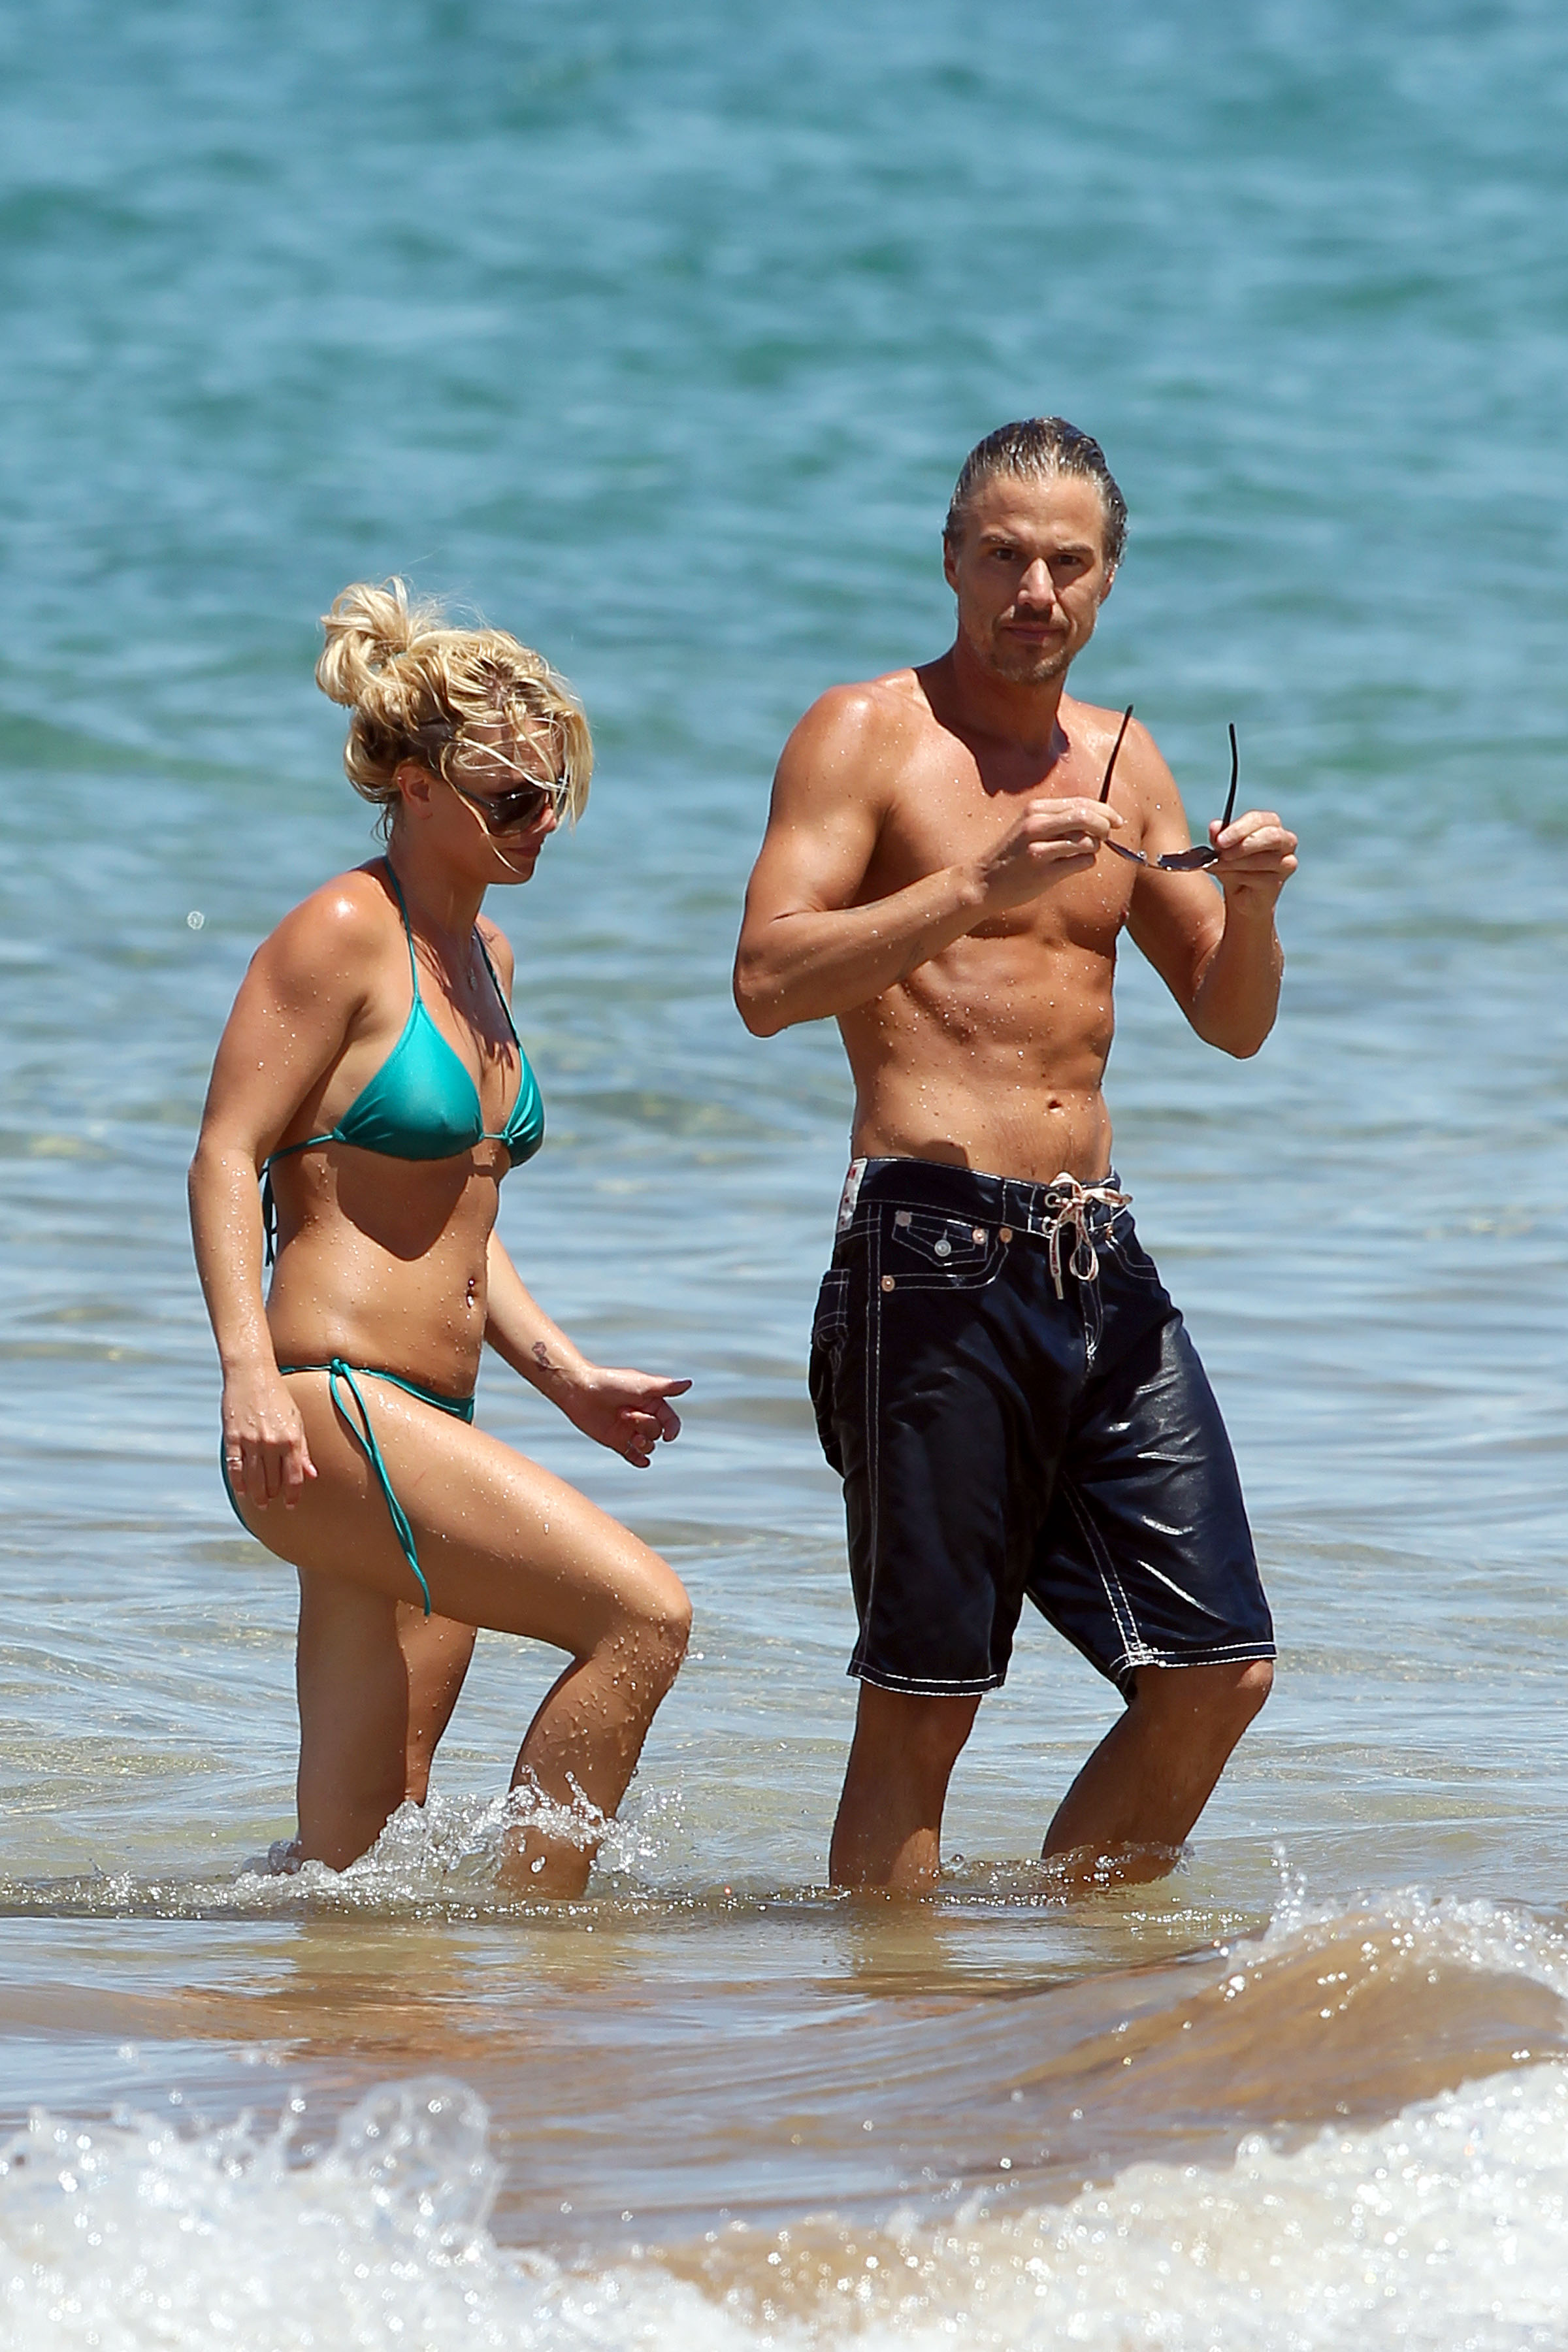 21678_Britney_Spears_on_the_beach_in_Maui_11_122_155lo.jpg